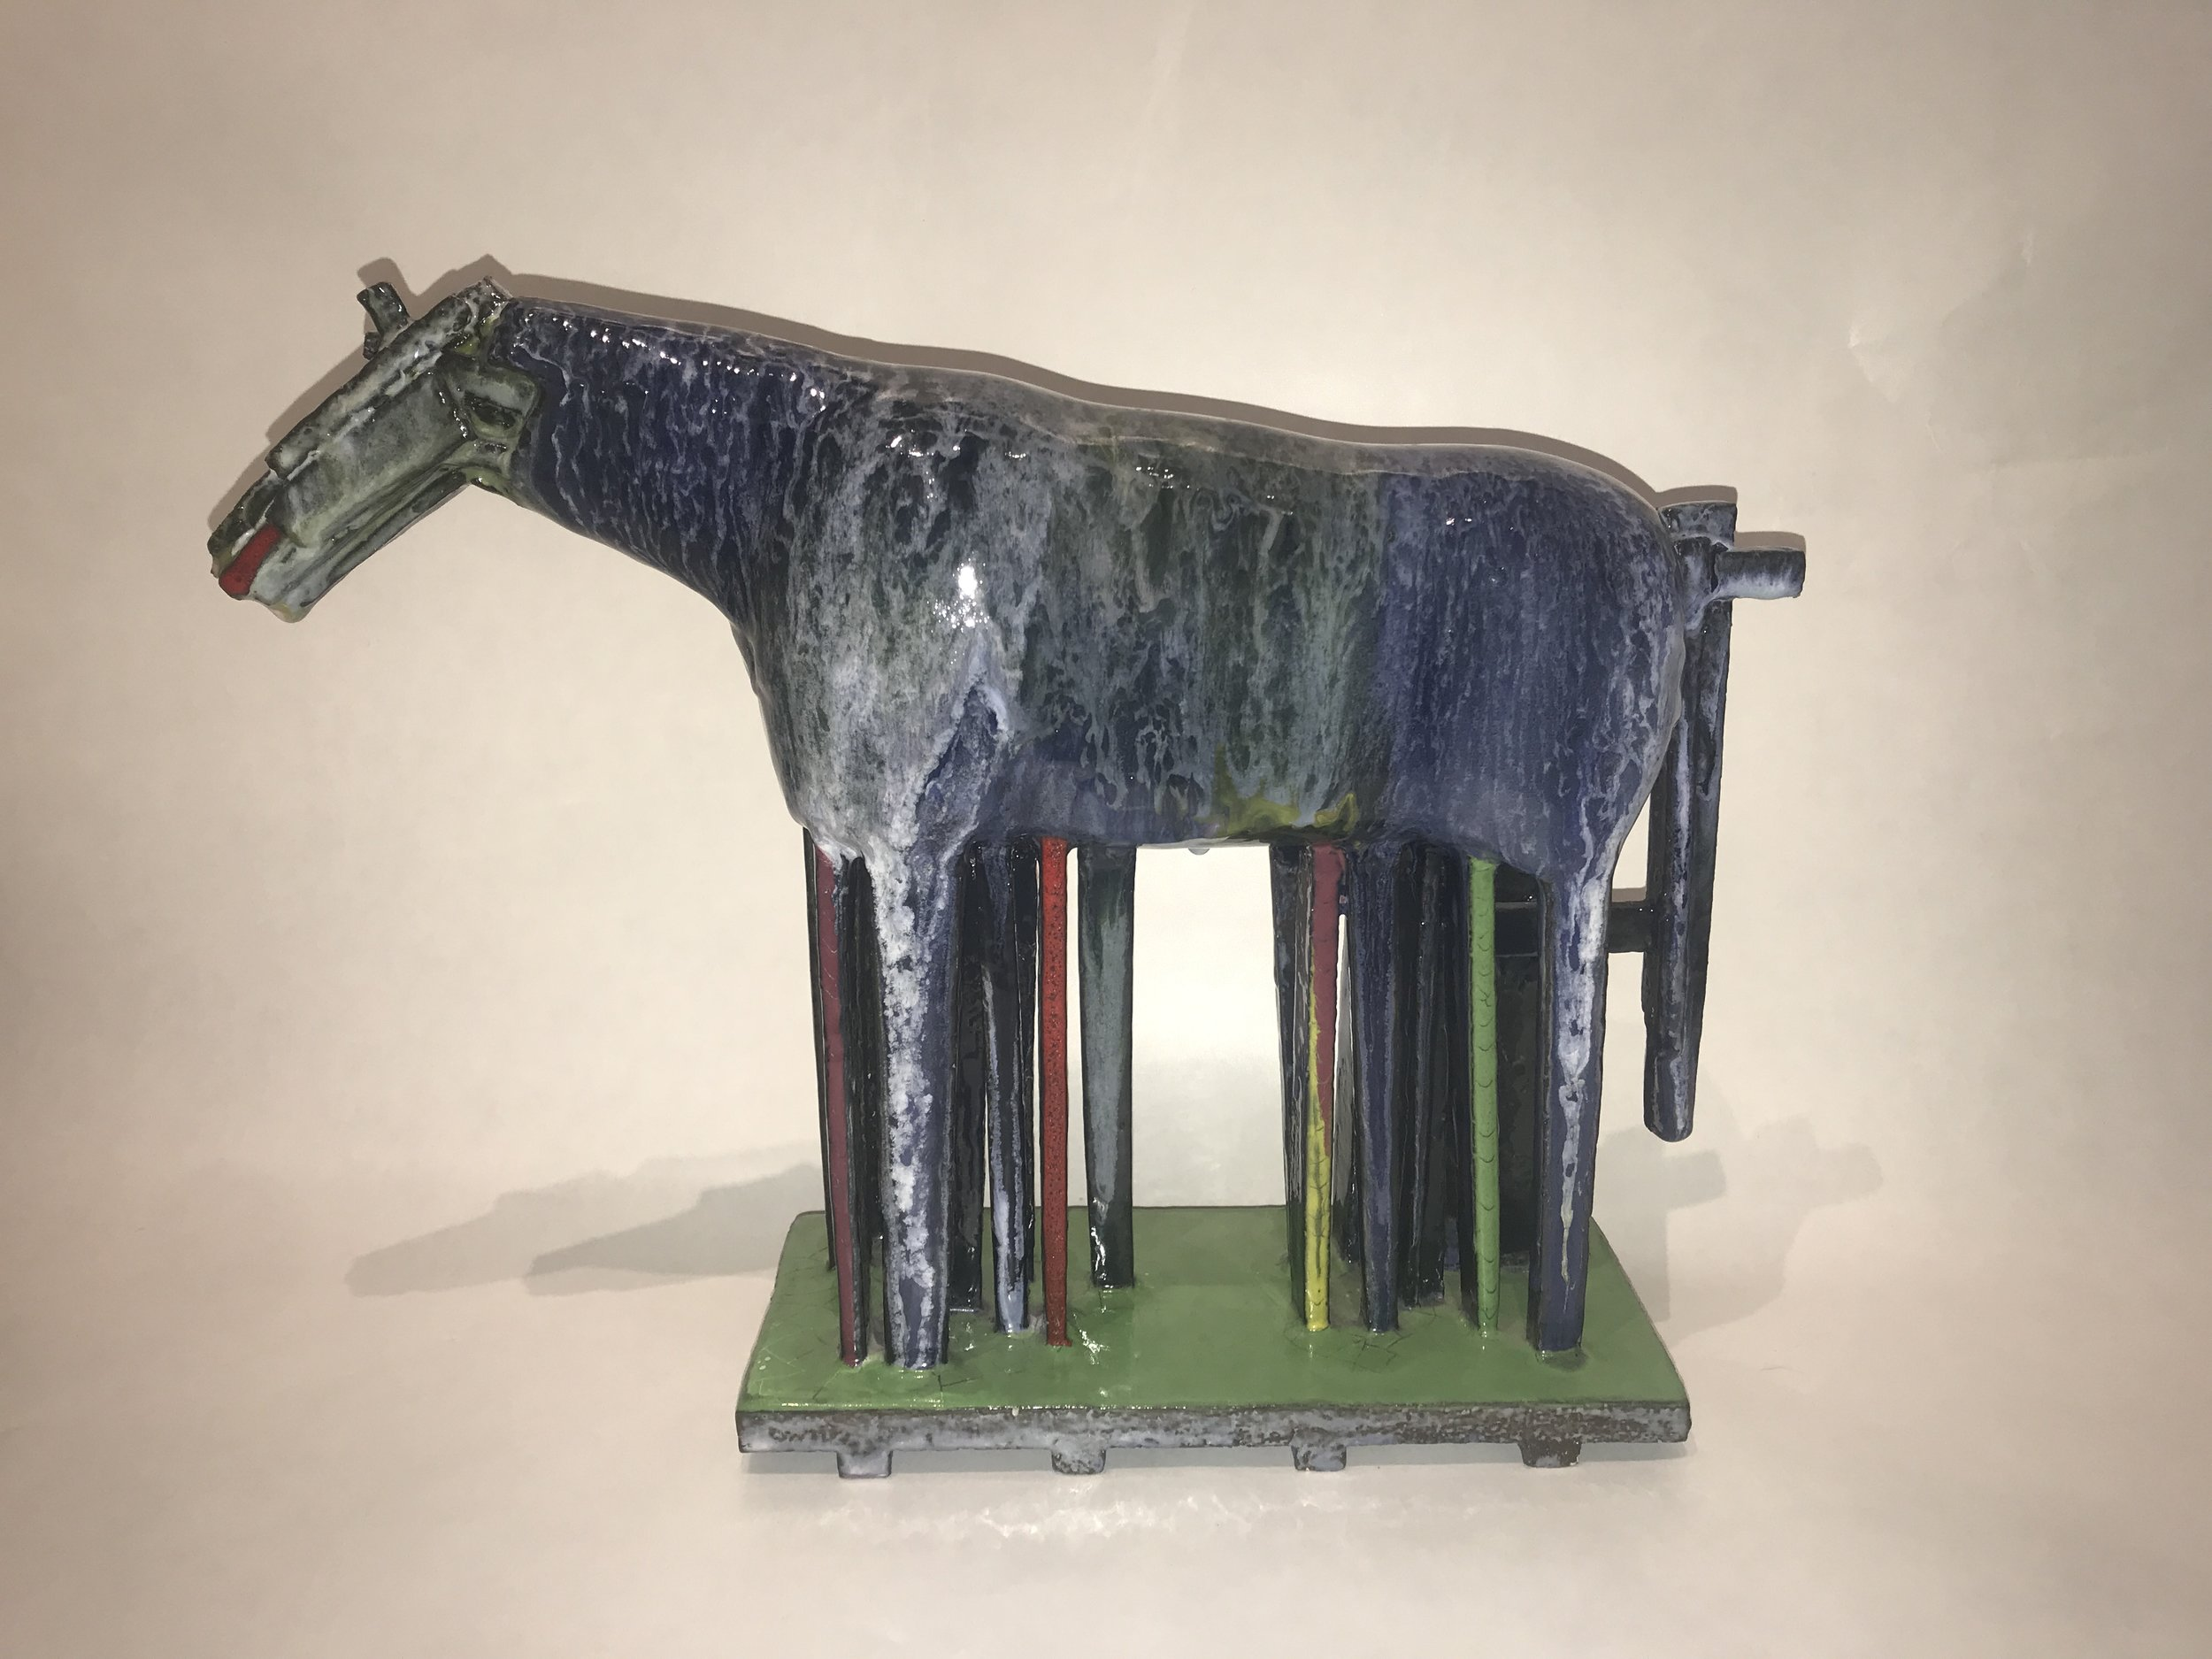 Blue Horse, painted glazed ceramic, 14 x 18 x 4 inches